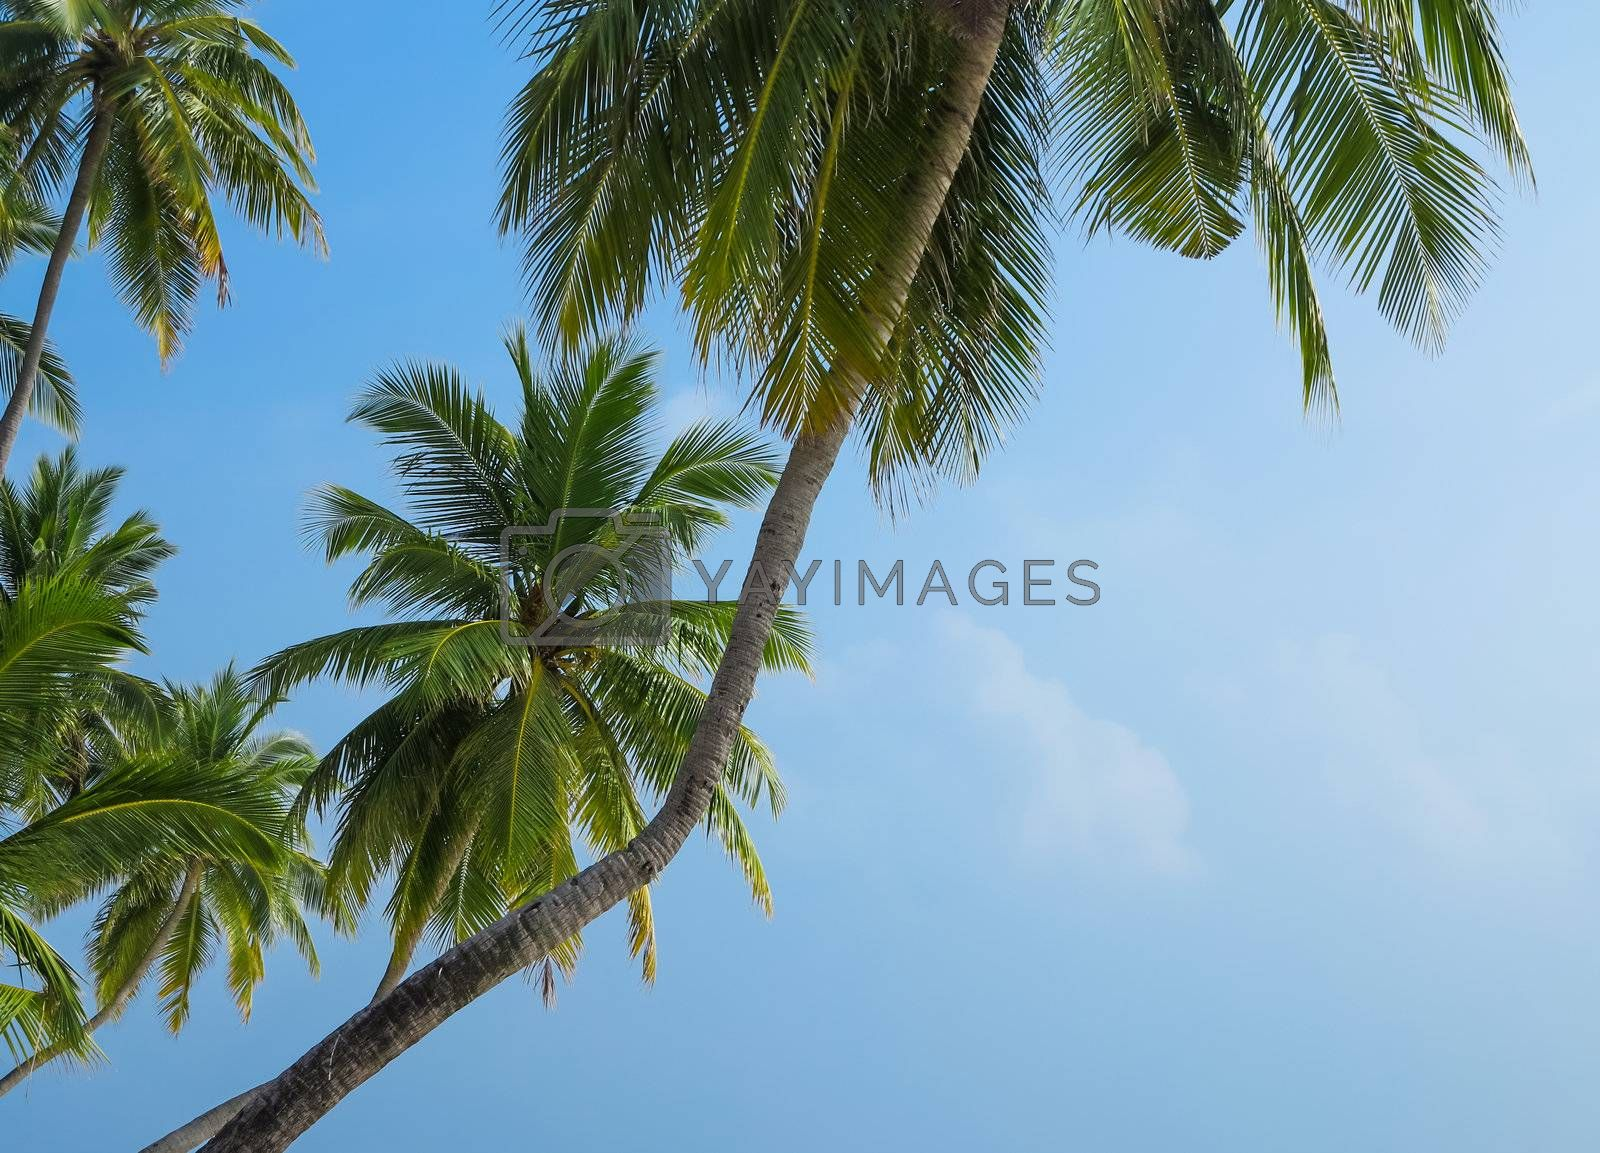 Palm trees against blue sky with clouds in Maldives.